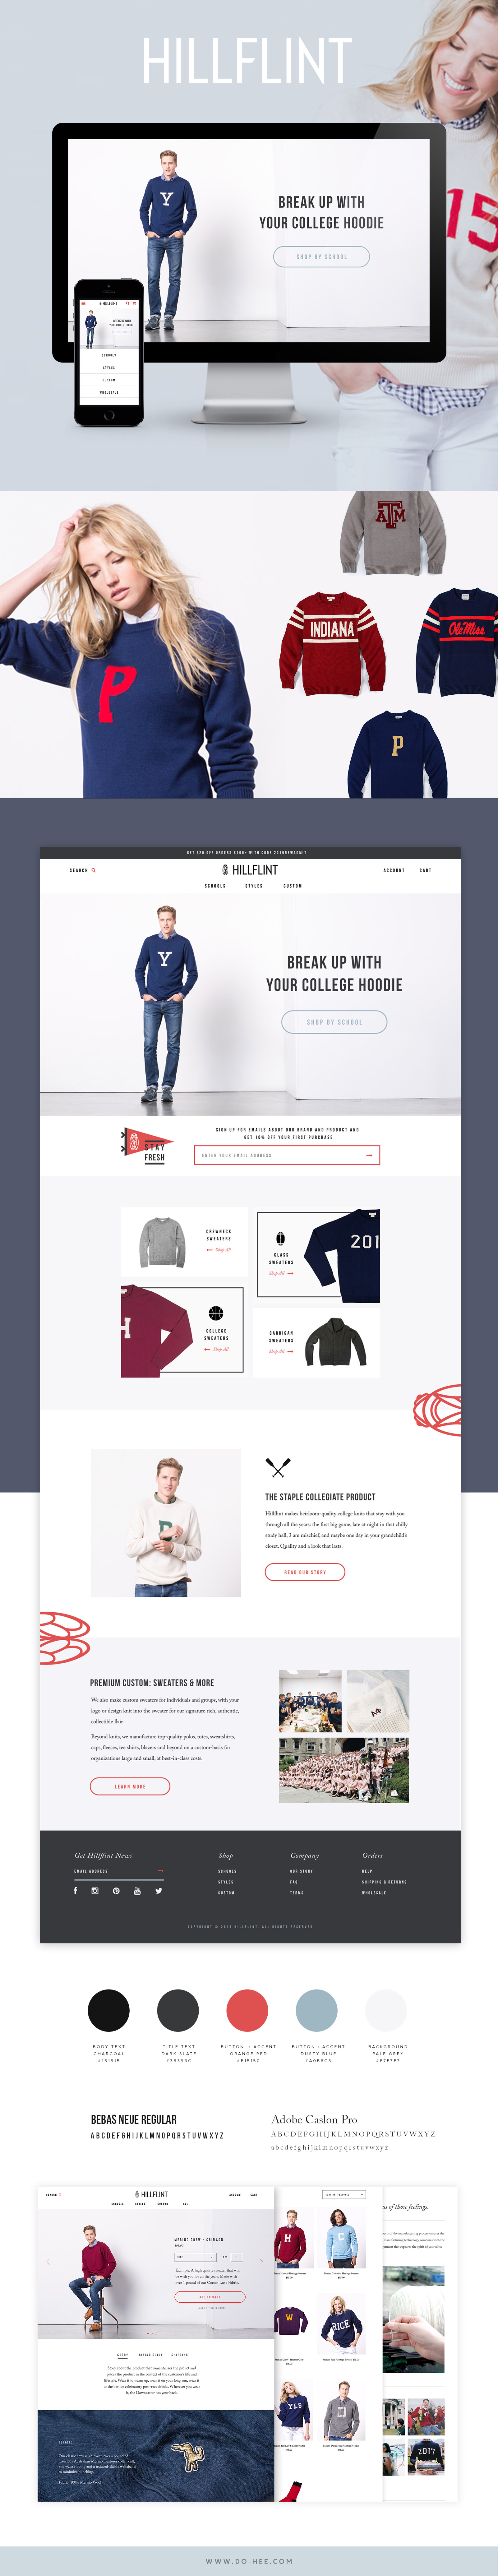 Hillflint E-commerce Website Design